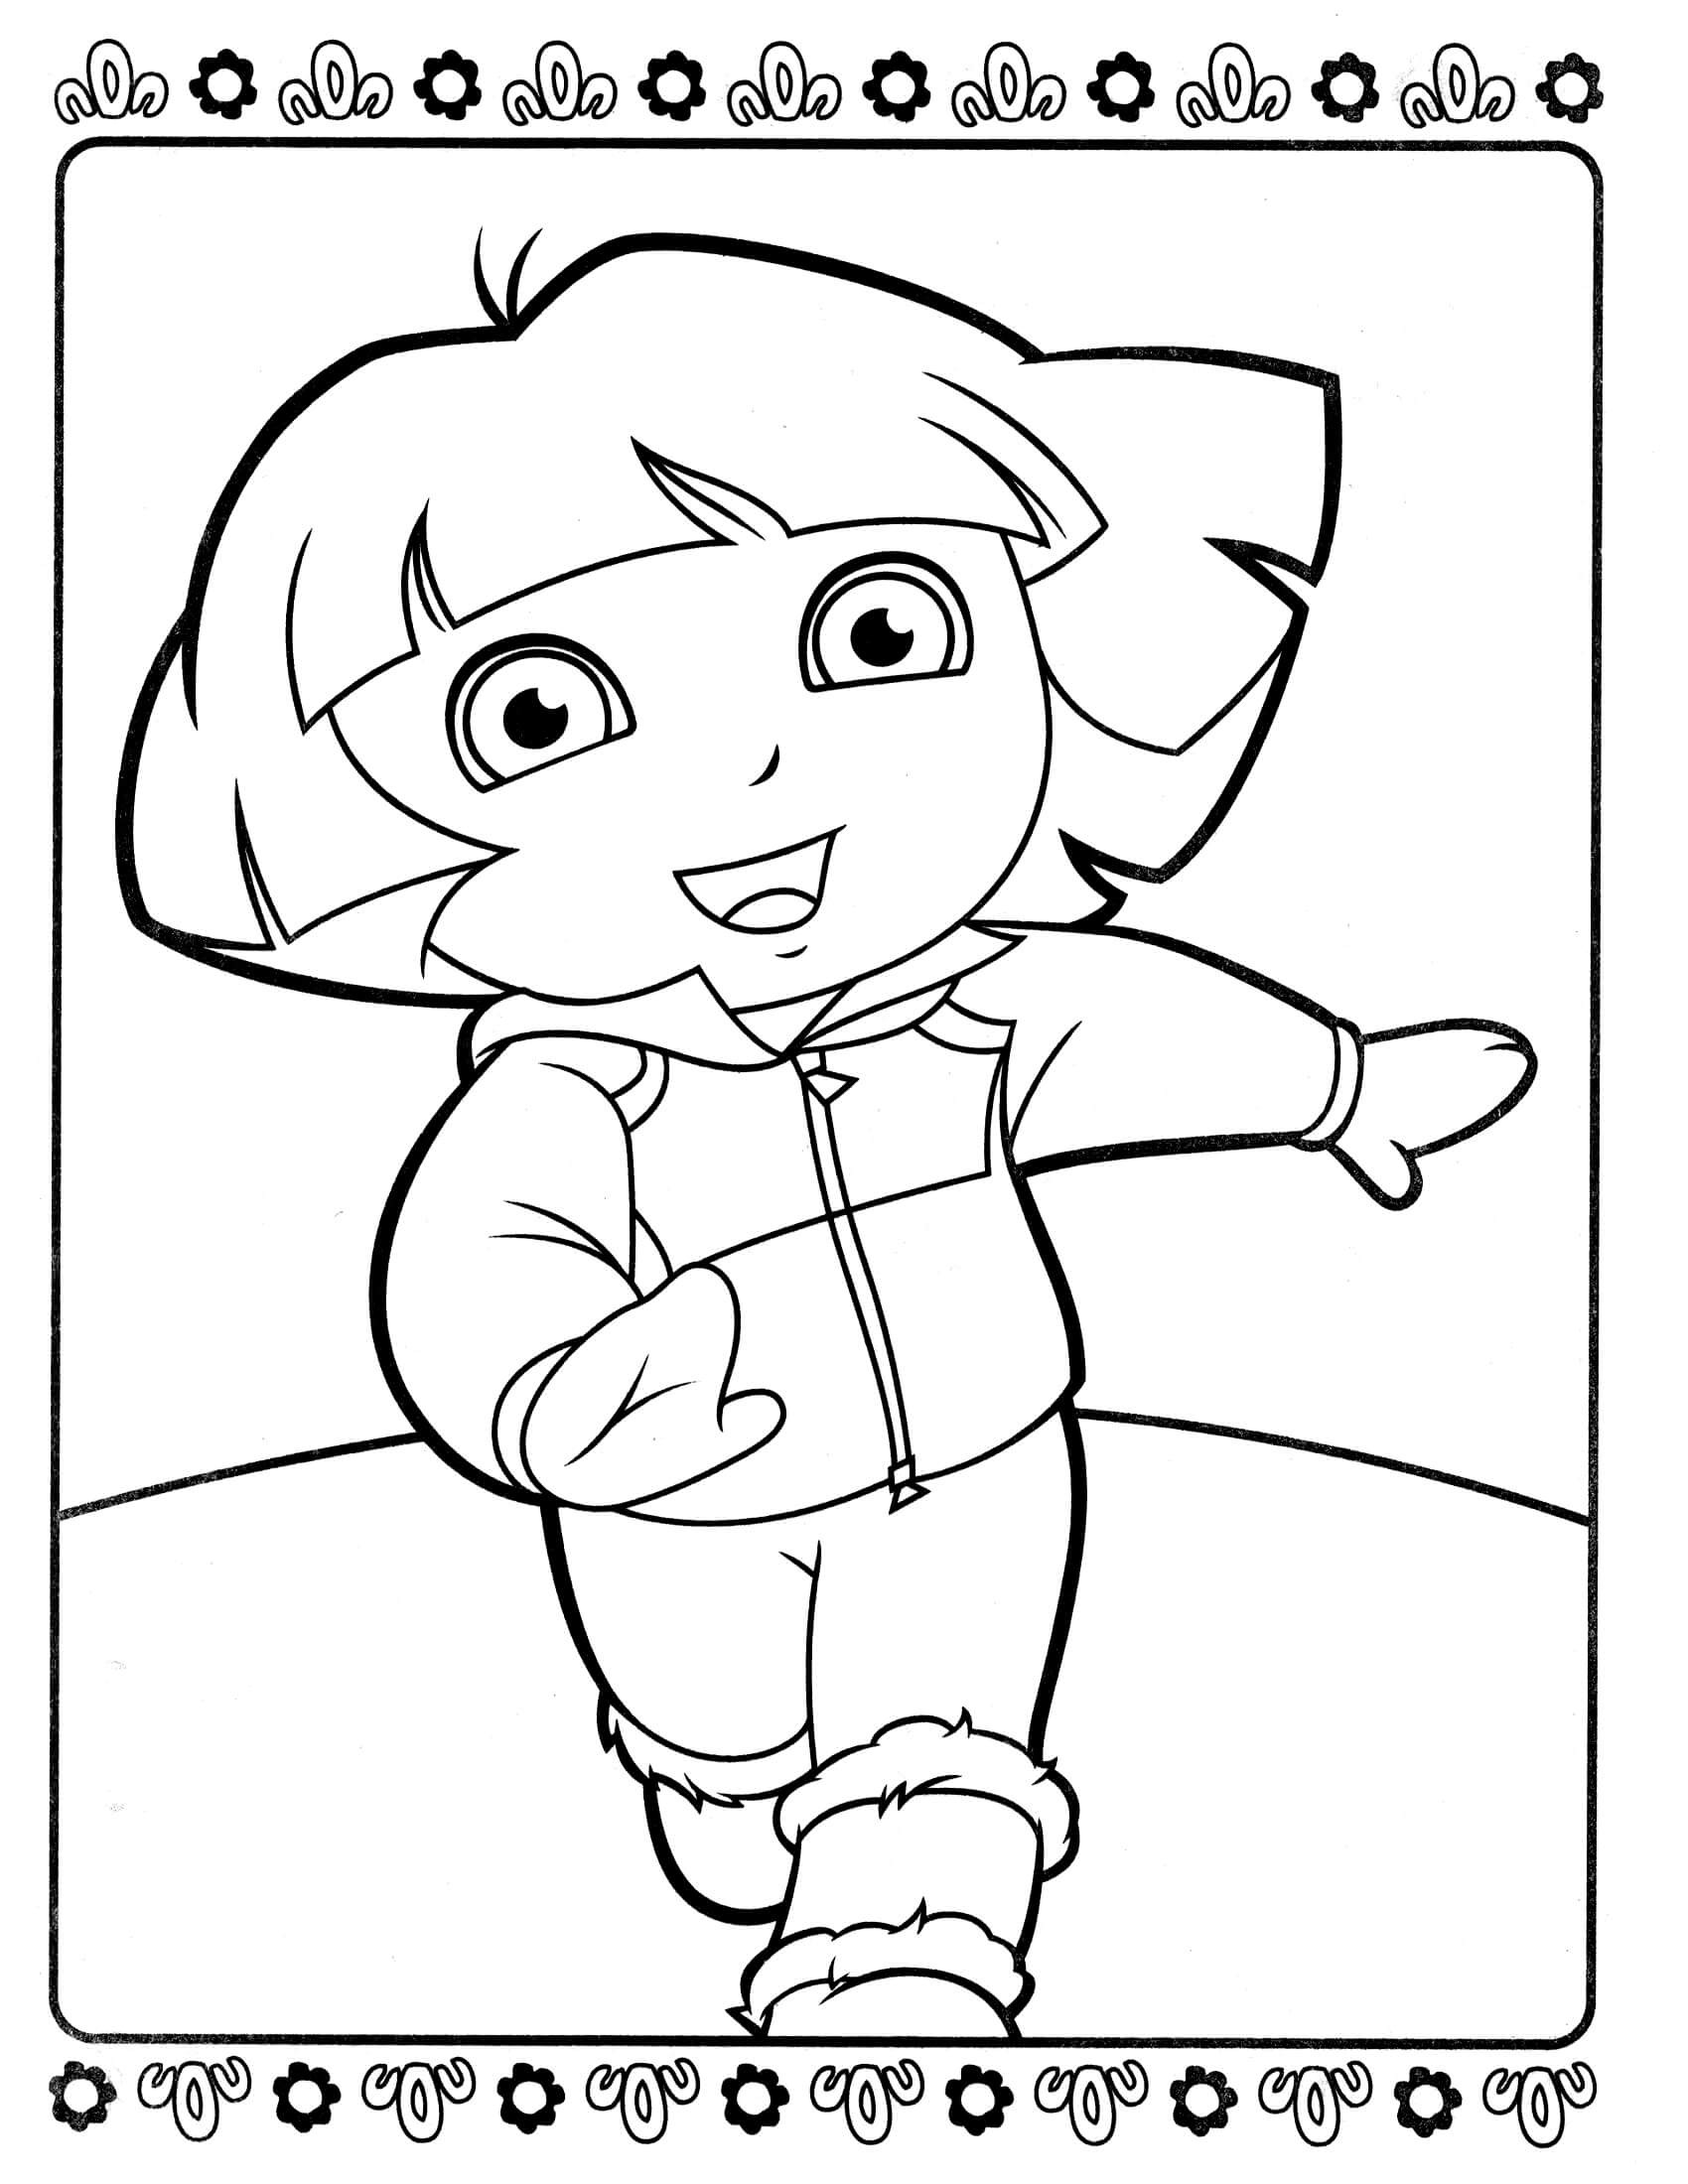 Dora Coloring Pages For Girls  Dora 8 – Coloringcolor